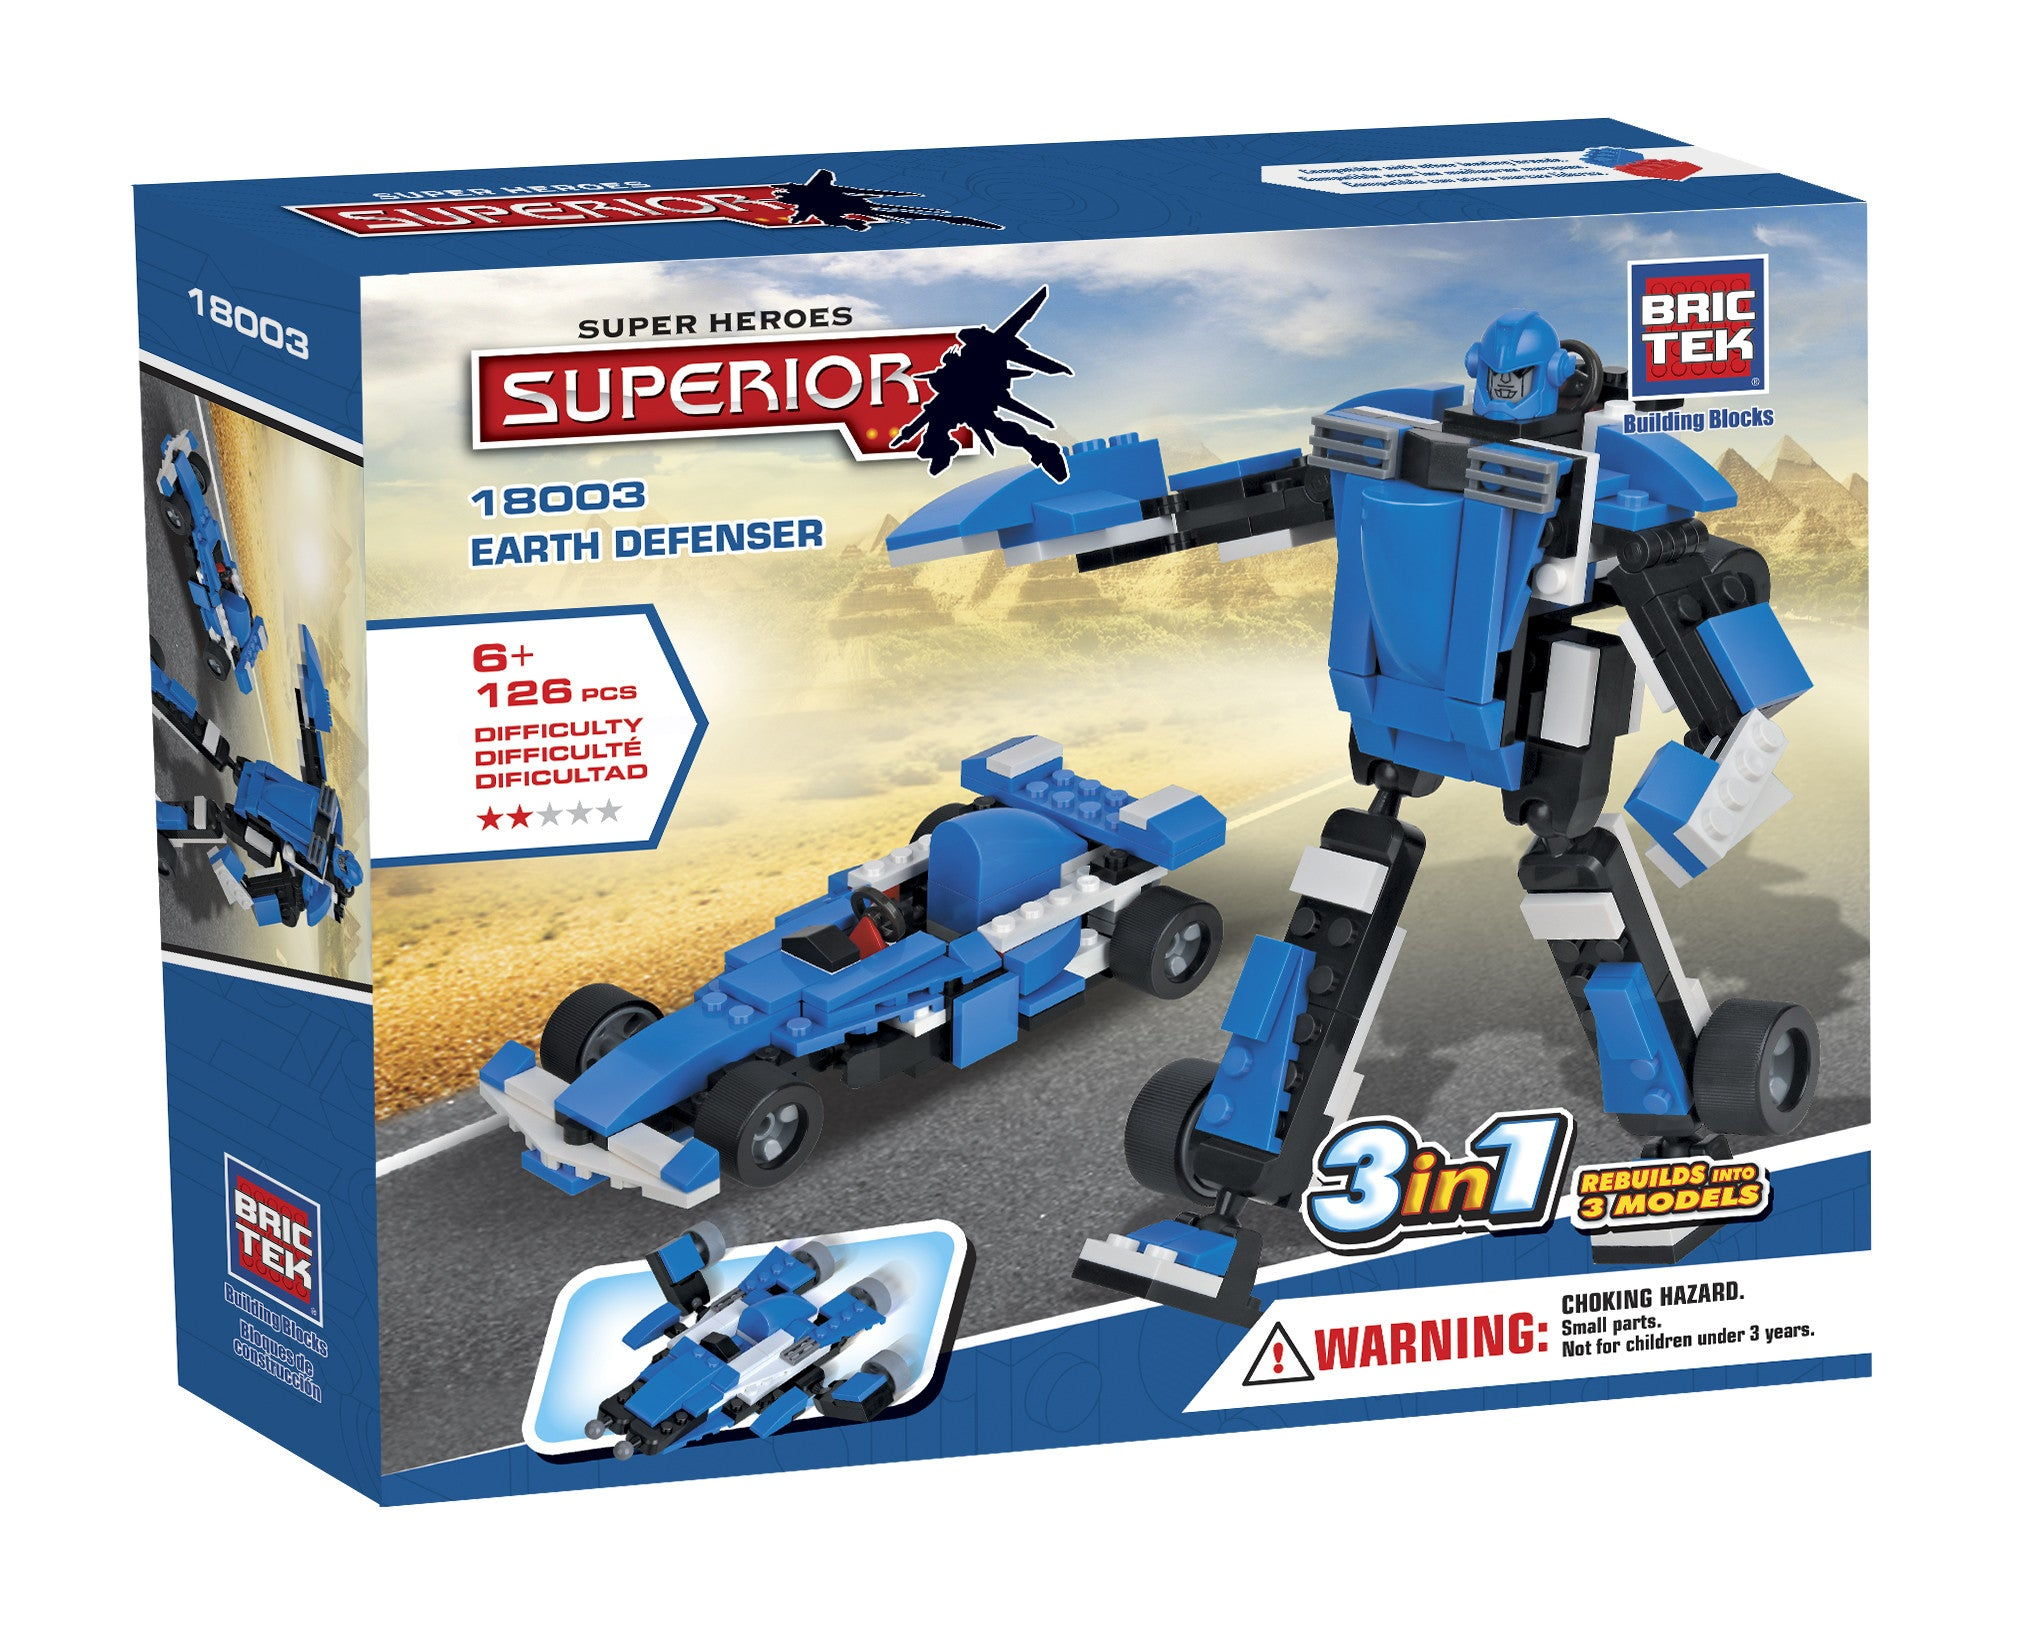 Brictek Building Blocks - Super Heroes 3 in 1 Earth Defenser 18003